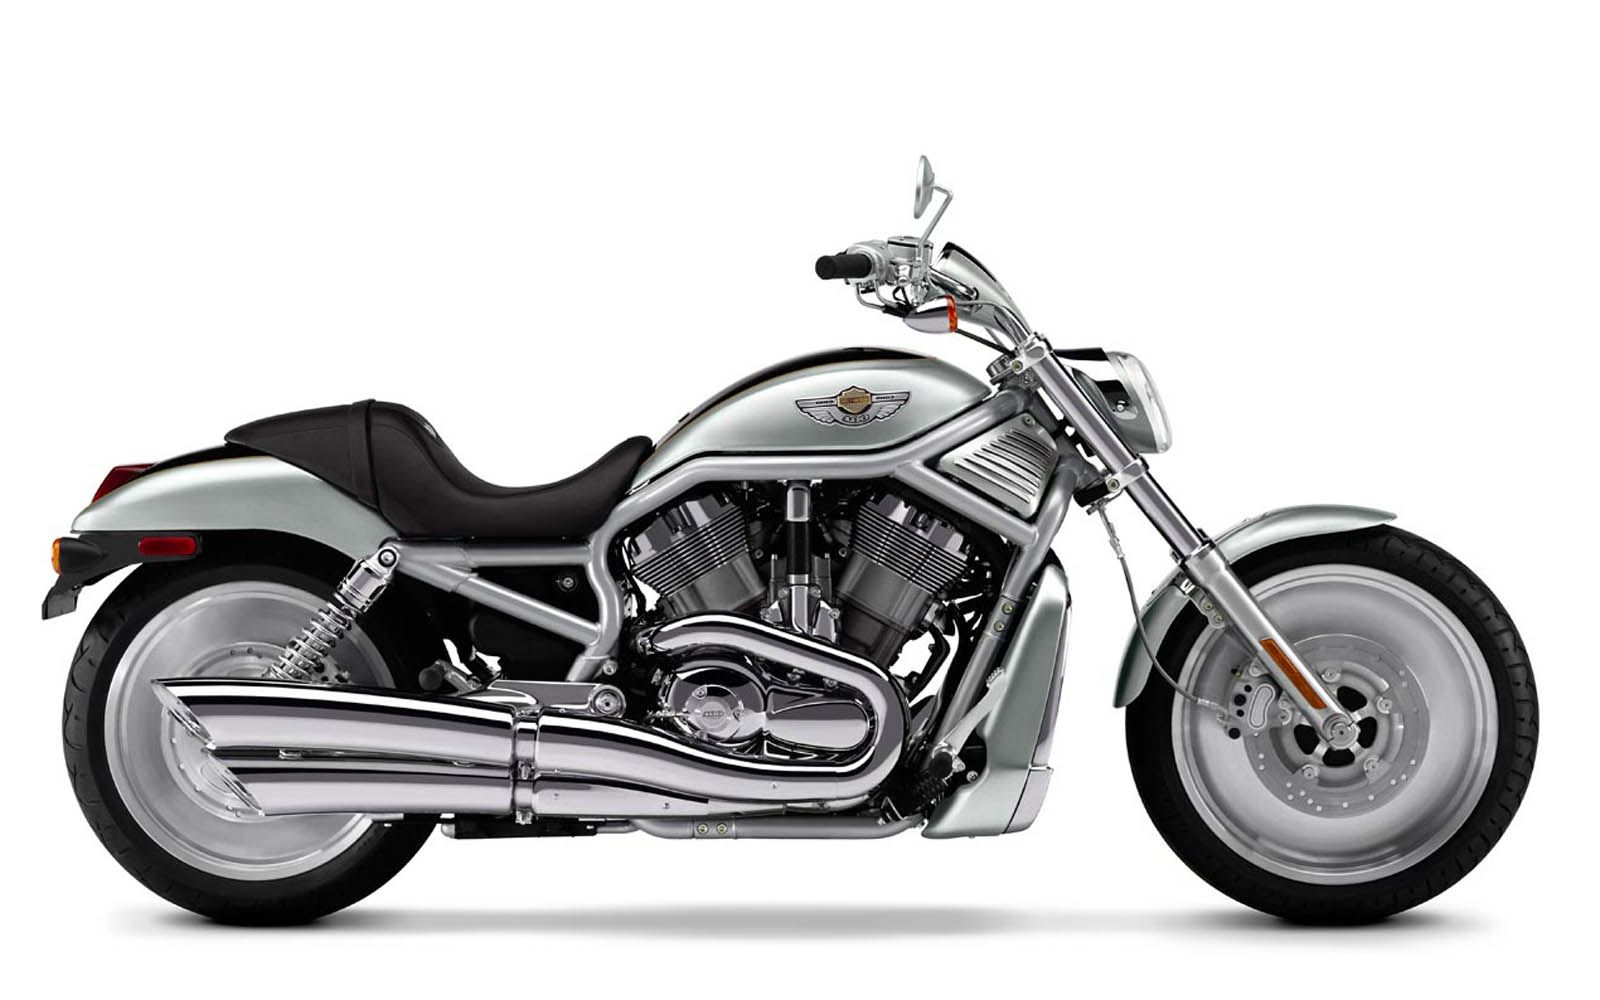 Wallpapers Harley Davidson Bikes Wallpapers